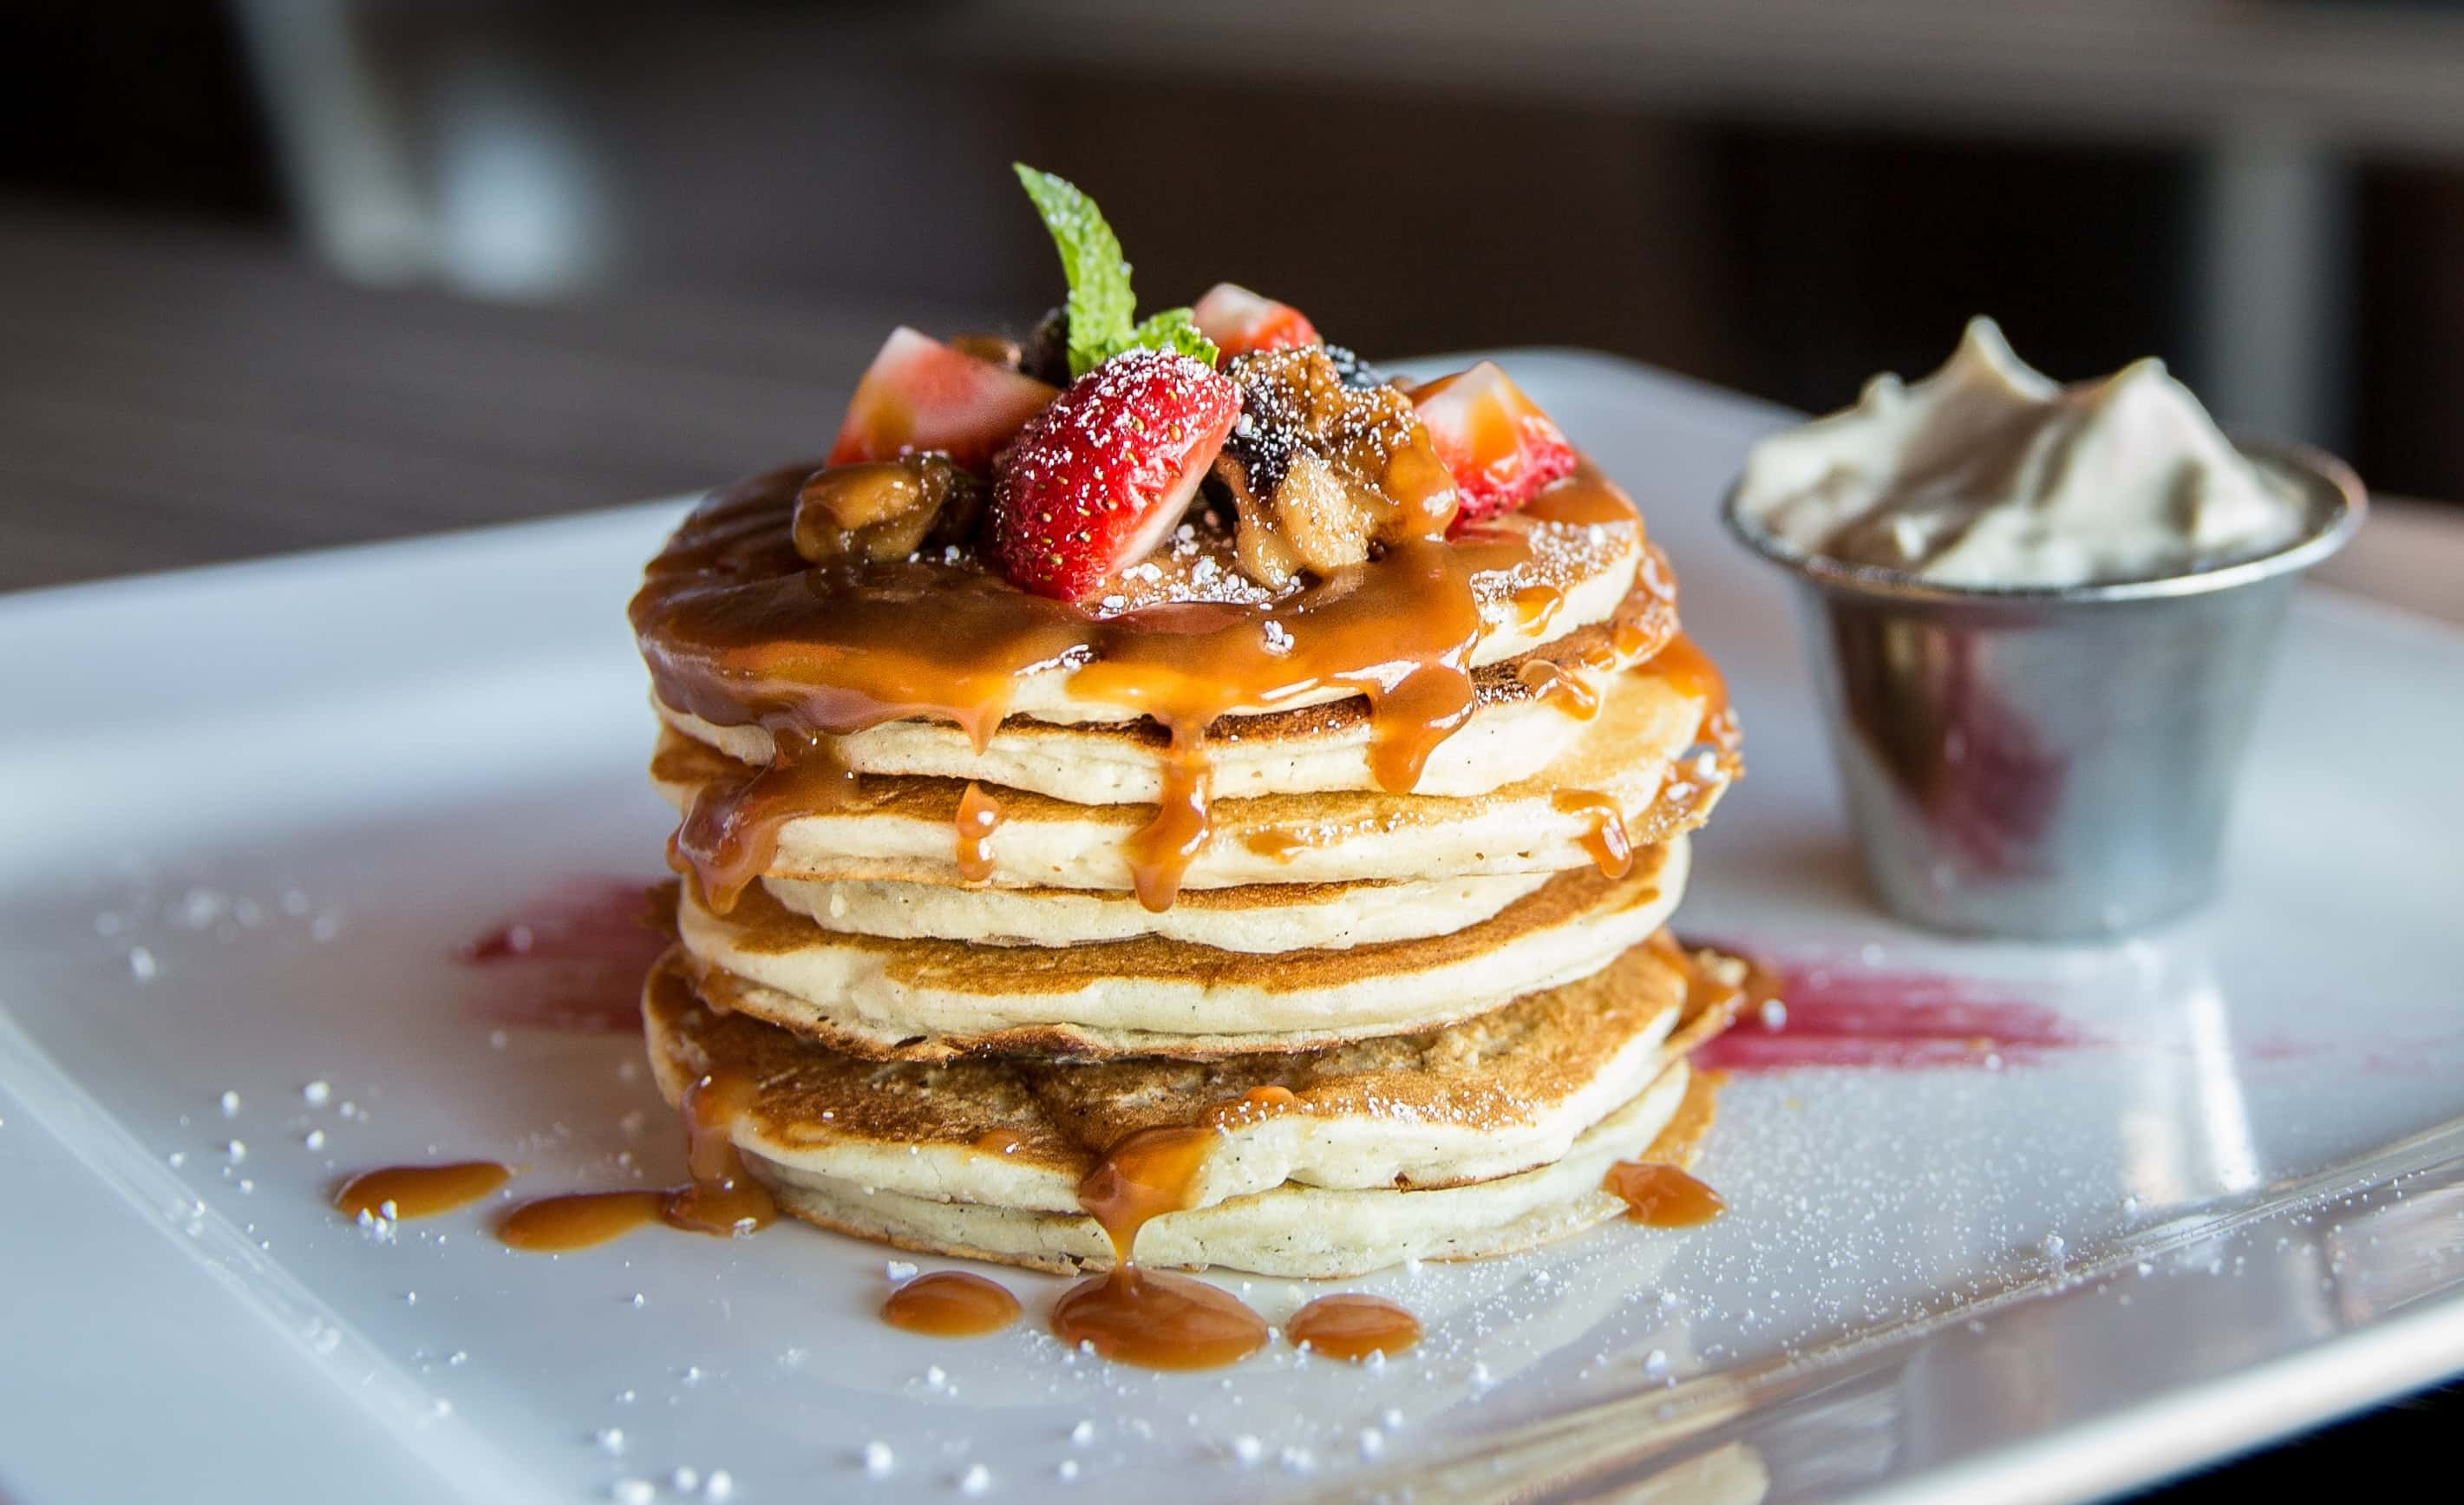 Waffles with syrup and fruit on top.